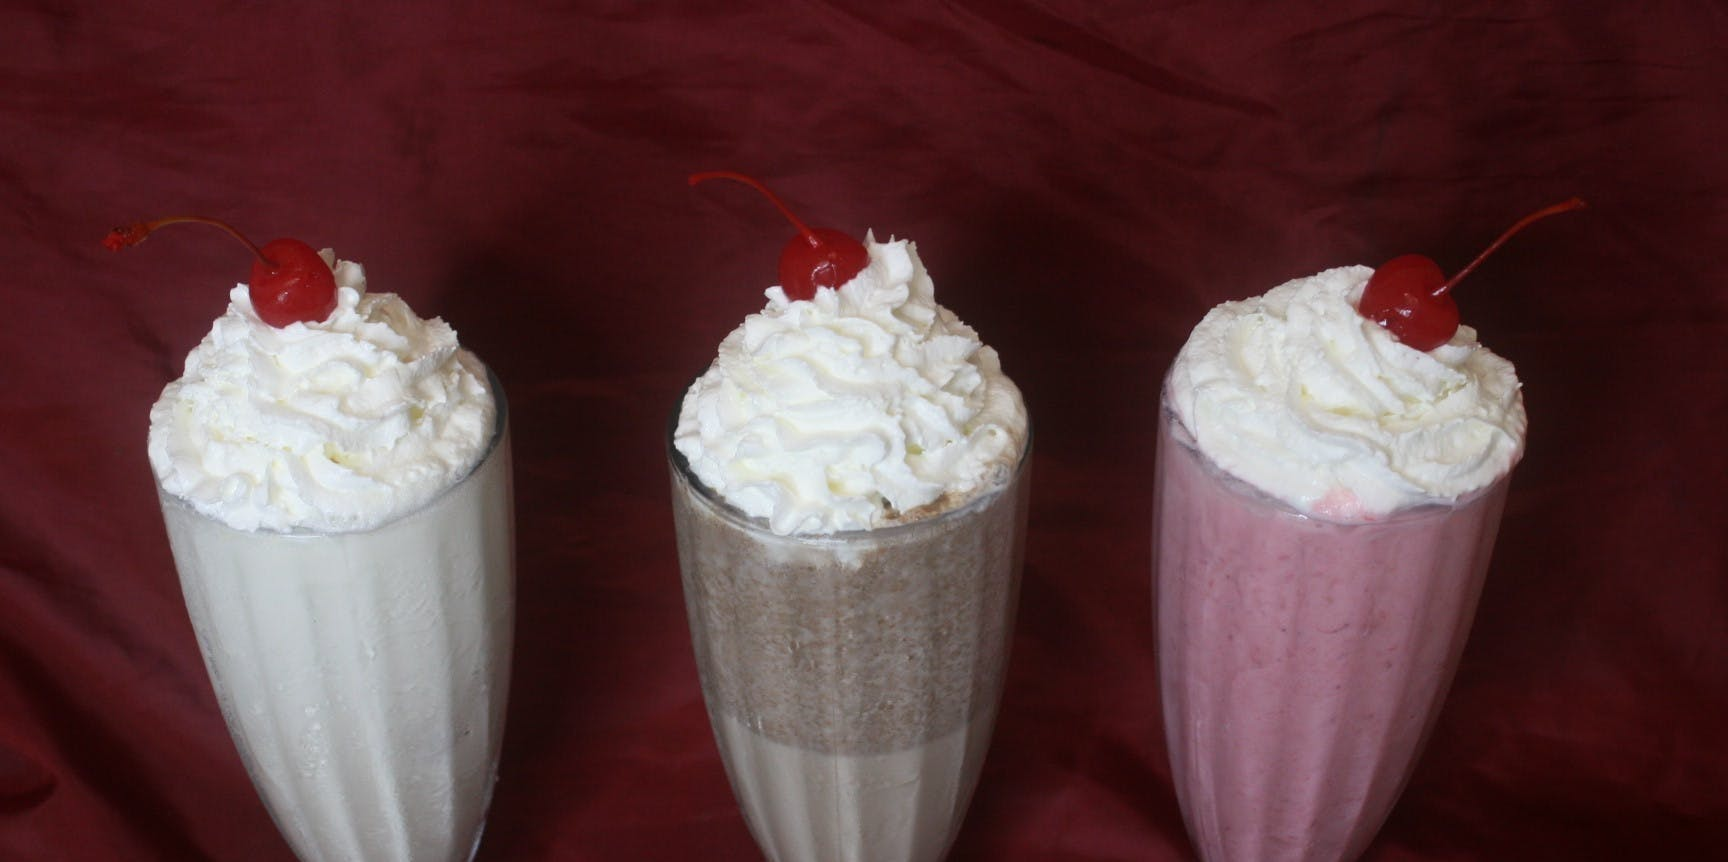 milkshakes with whip cream and a cherry